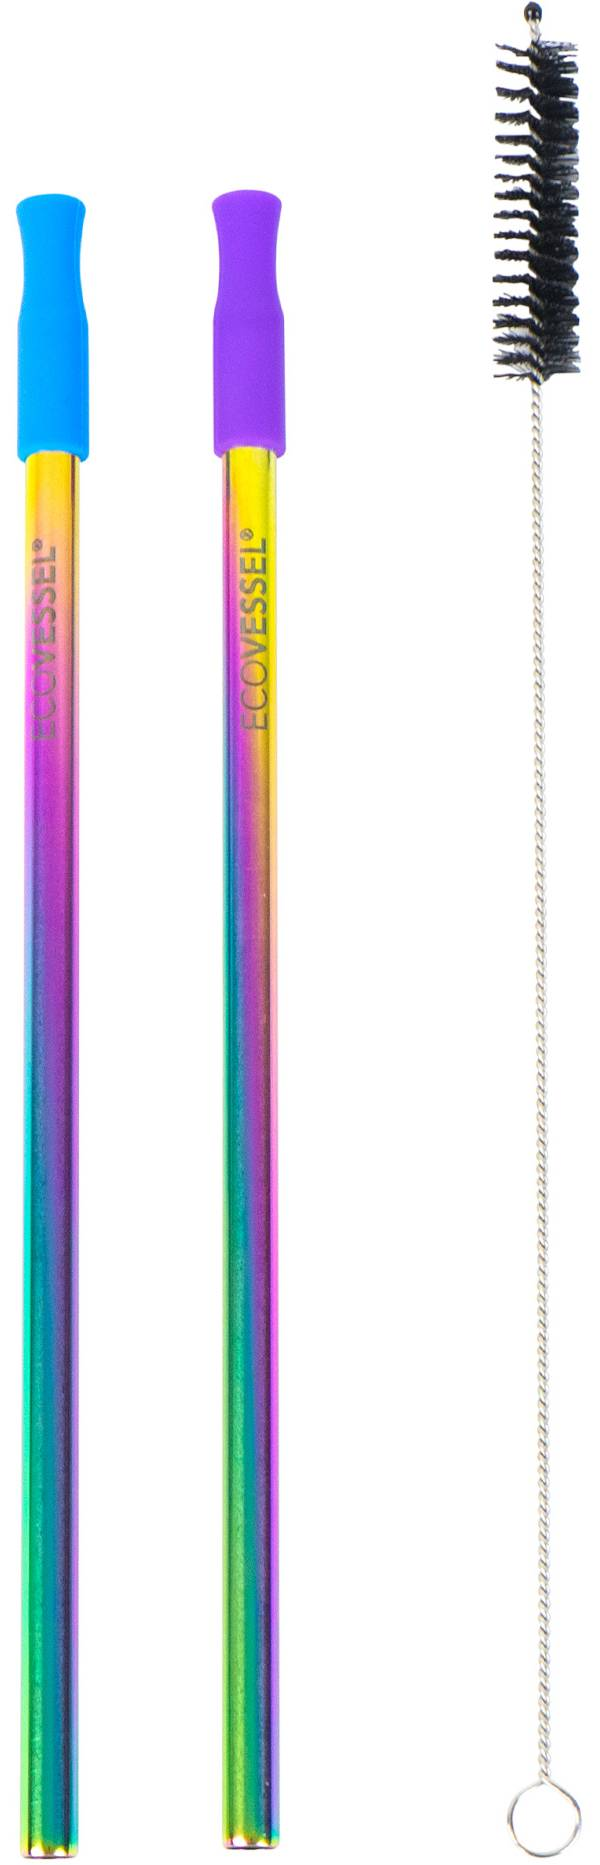 EcoVessel Reusable Stainless Steel Straw Set product image